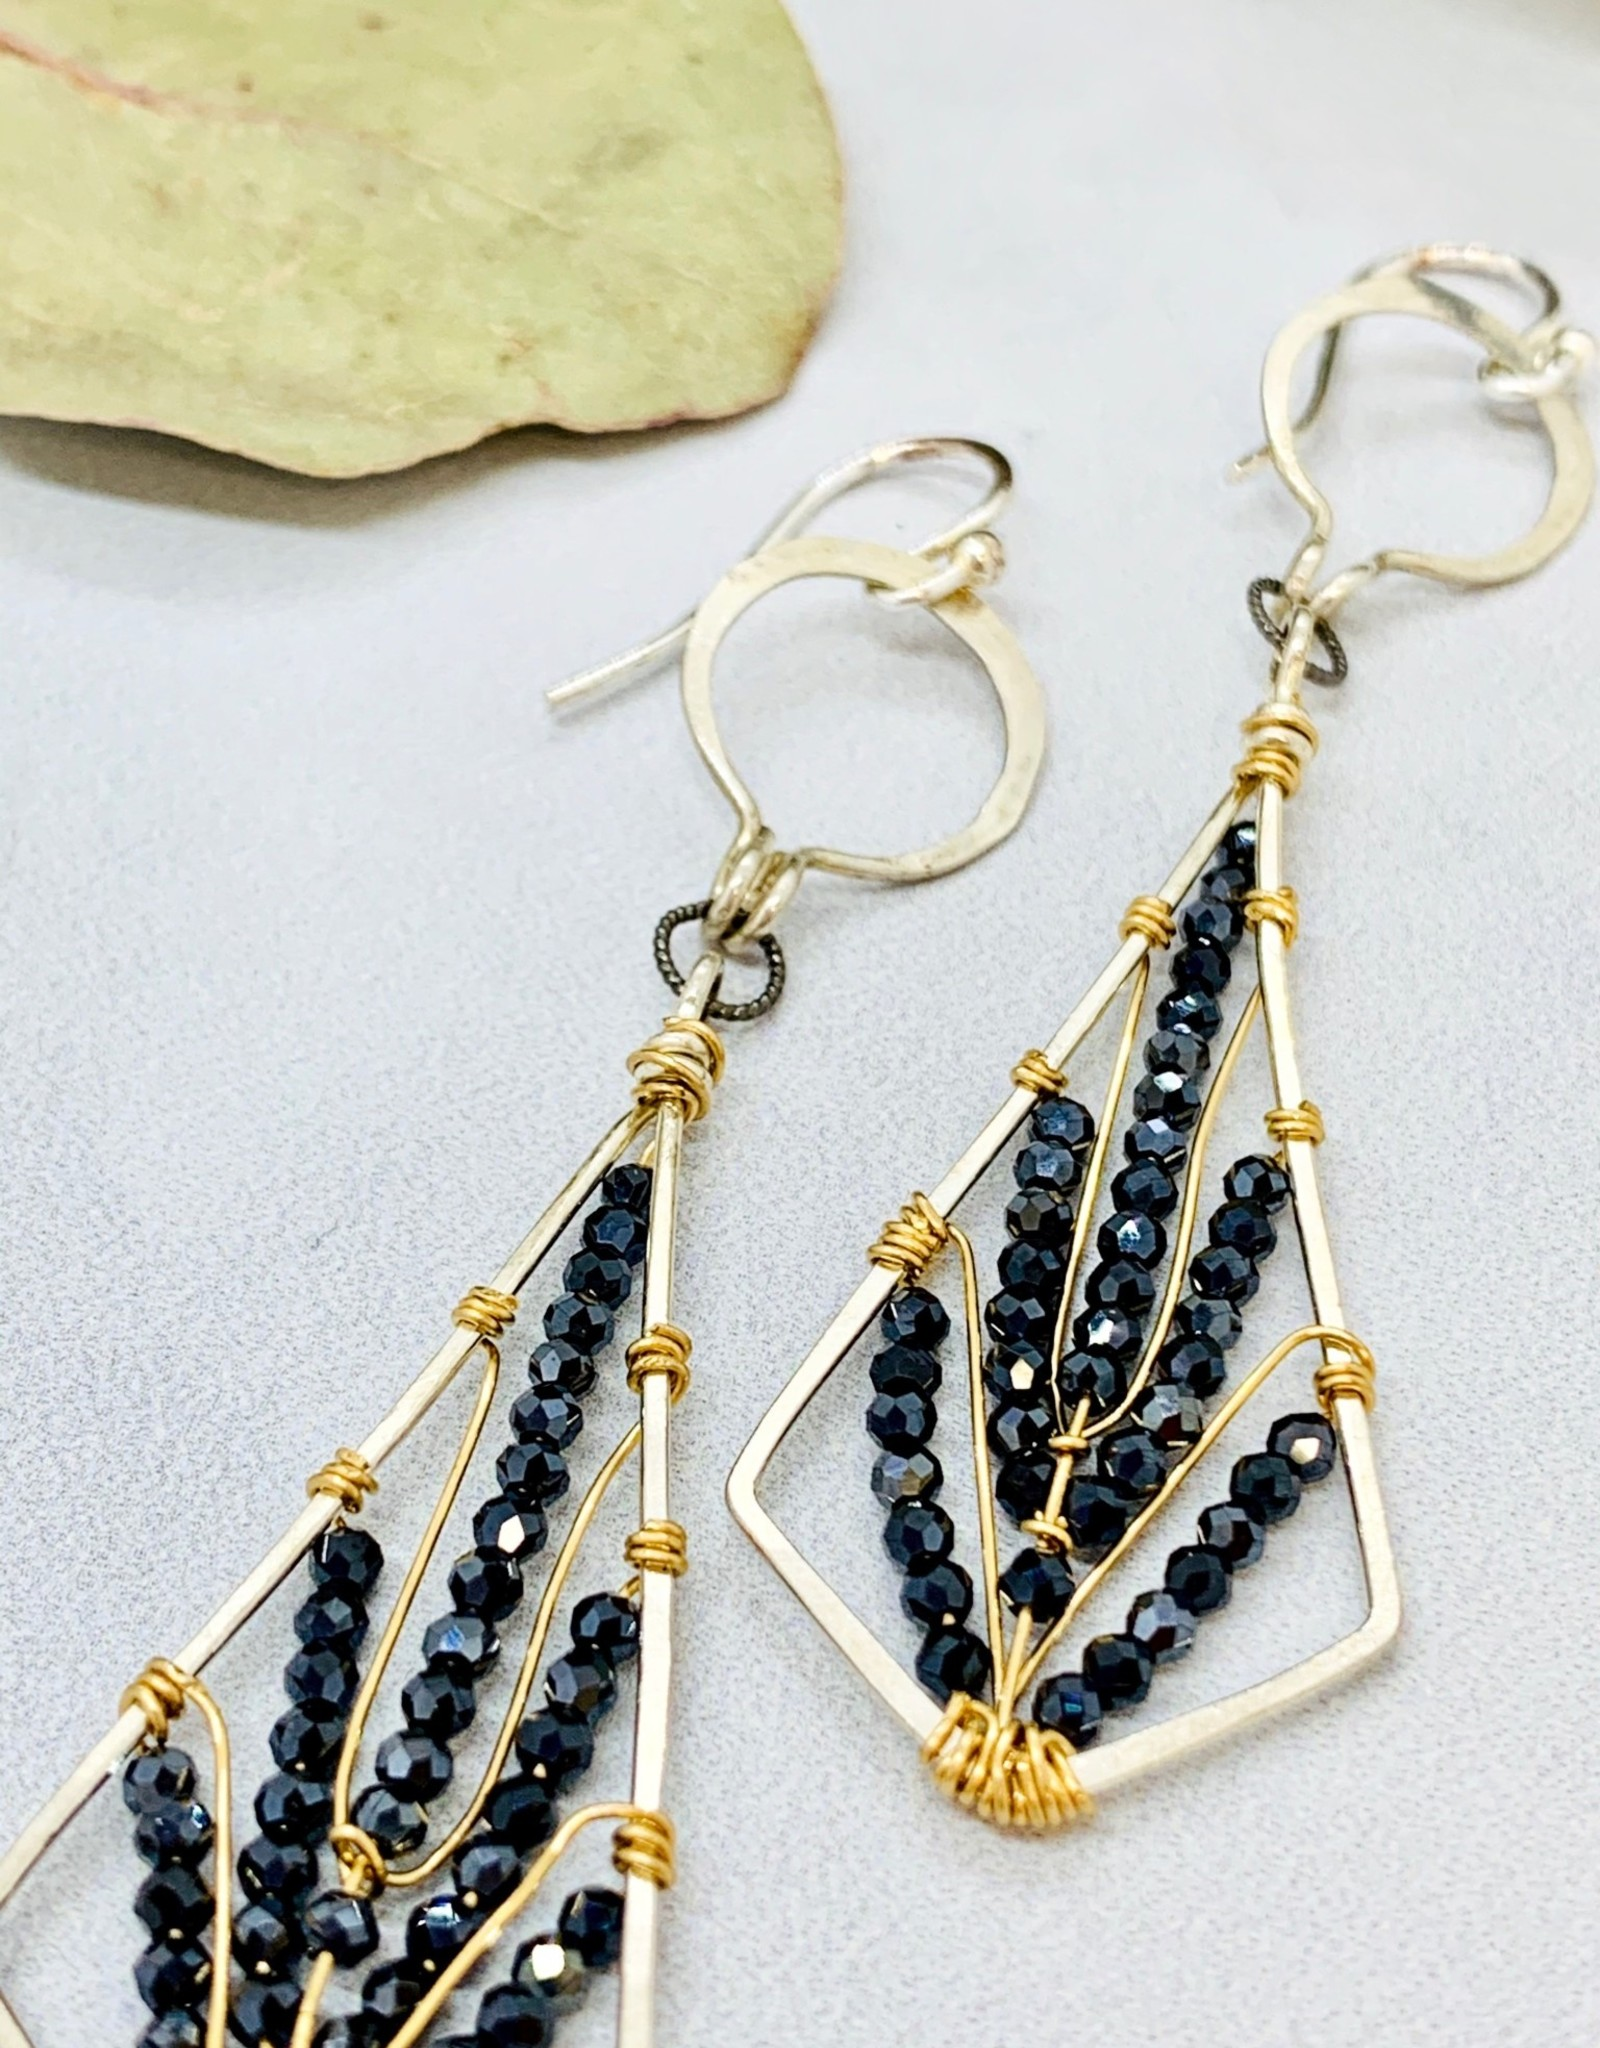 Handmade black spinel tiny faceted gems woven on gold-filled and oxidized sterling silver diamond earrings